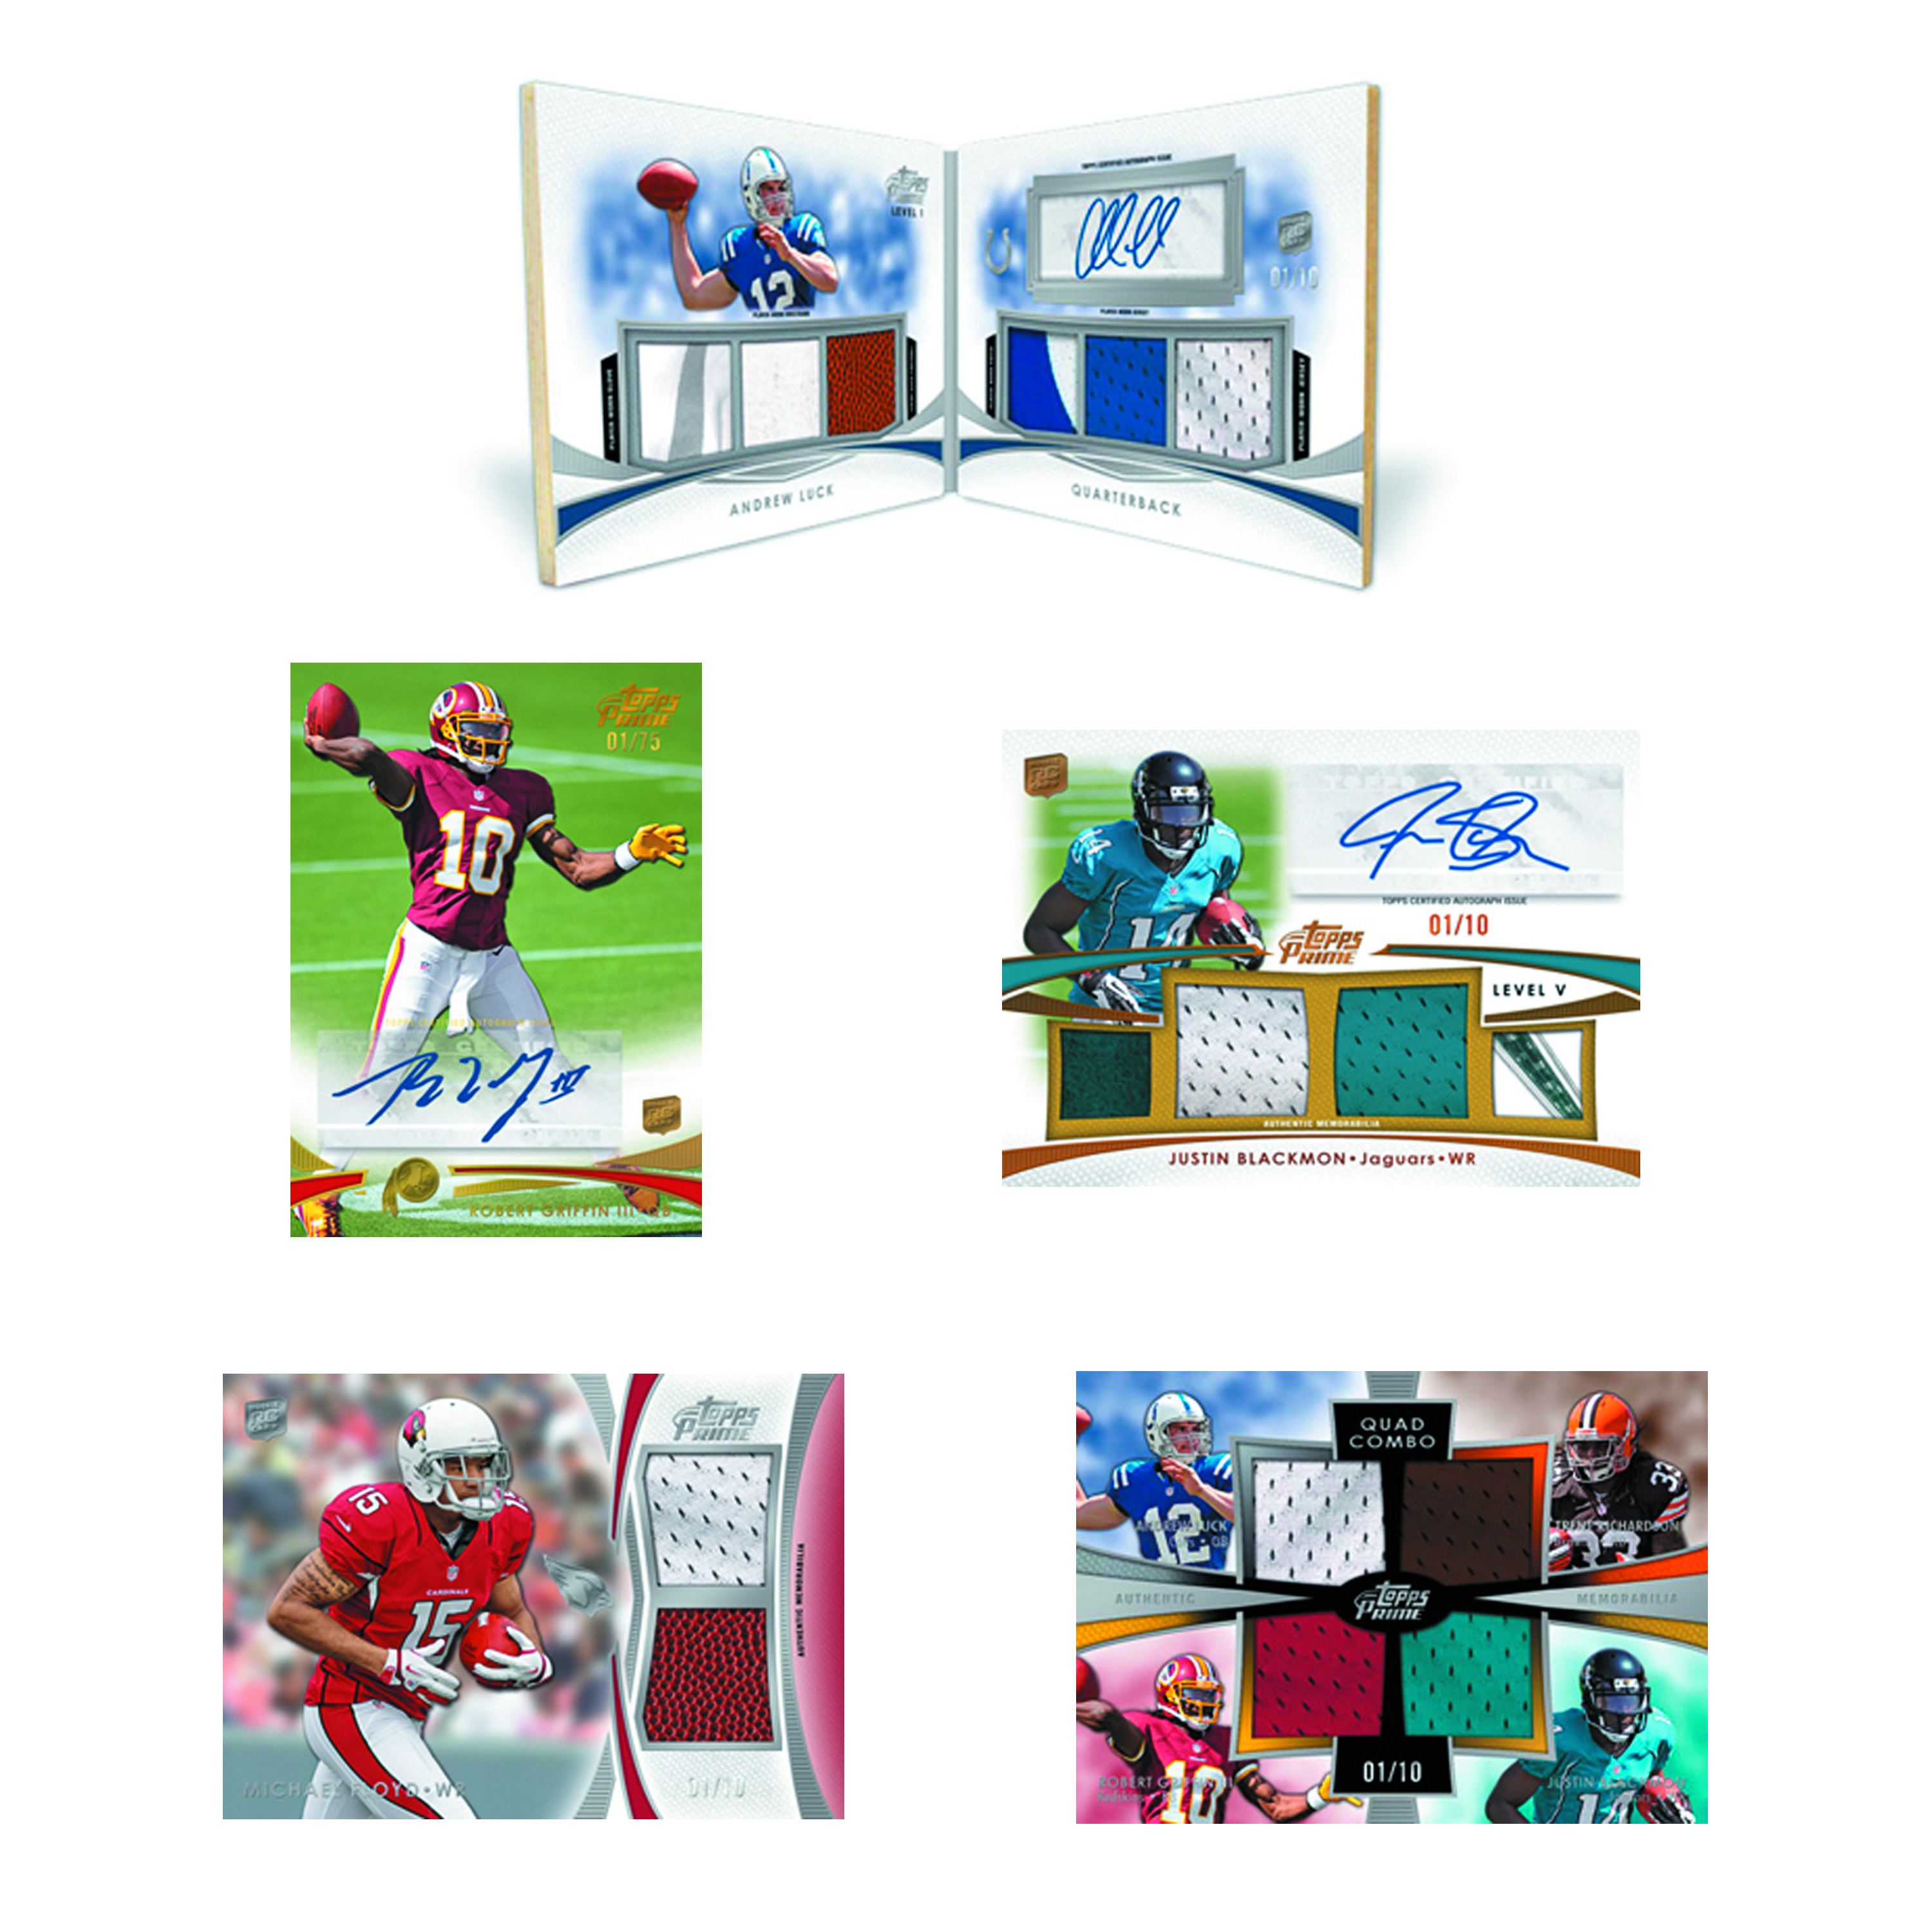 TOPPS 2012 PRIME FOOTBALL T/C BOX